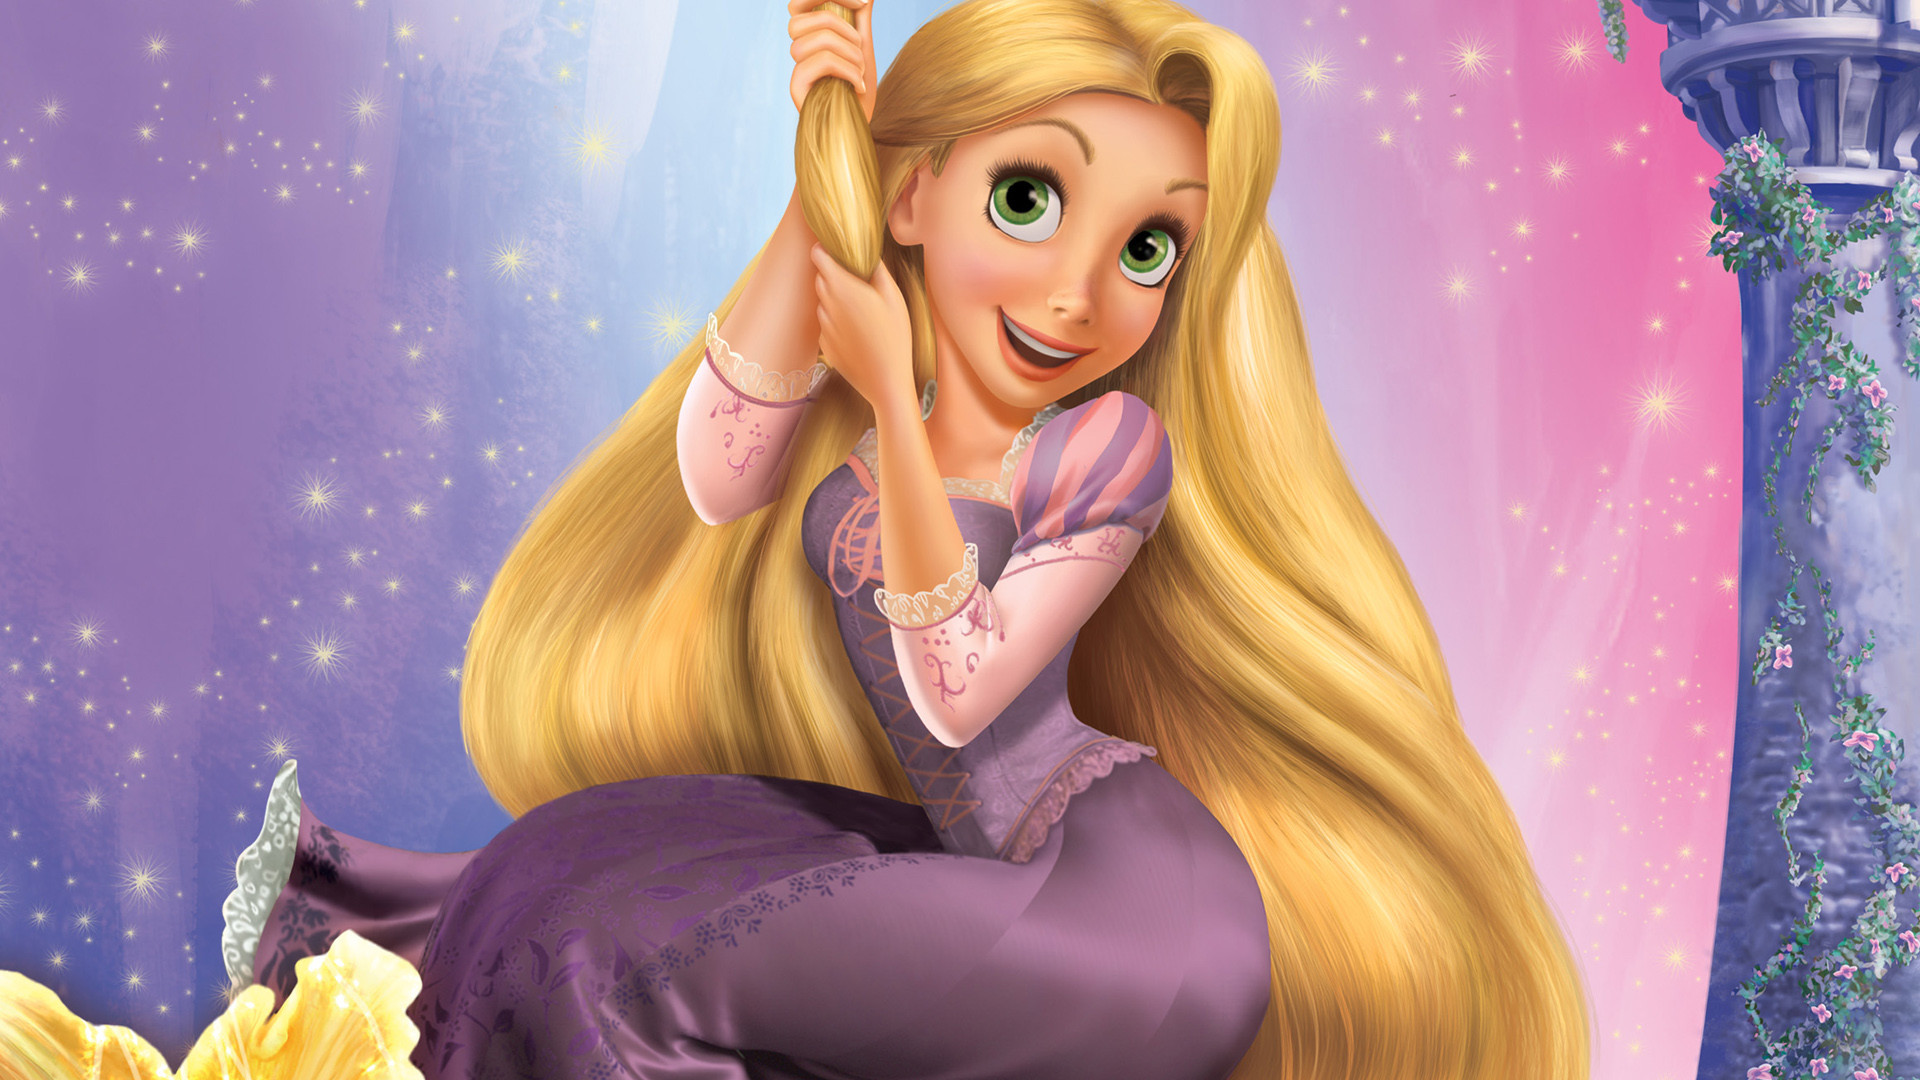 Tangled wallpaper hd 71 images - Tangled wallpaper ...